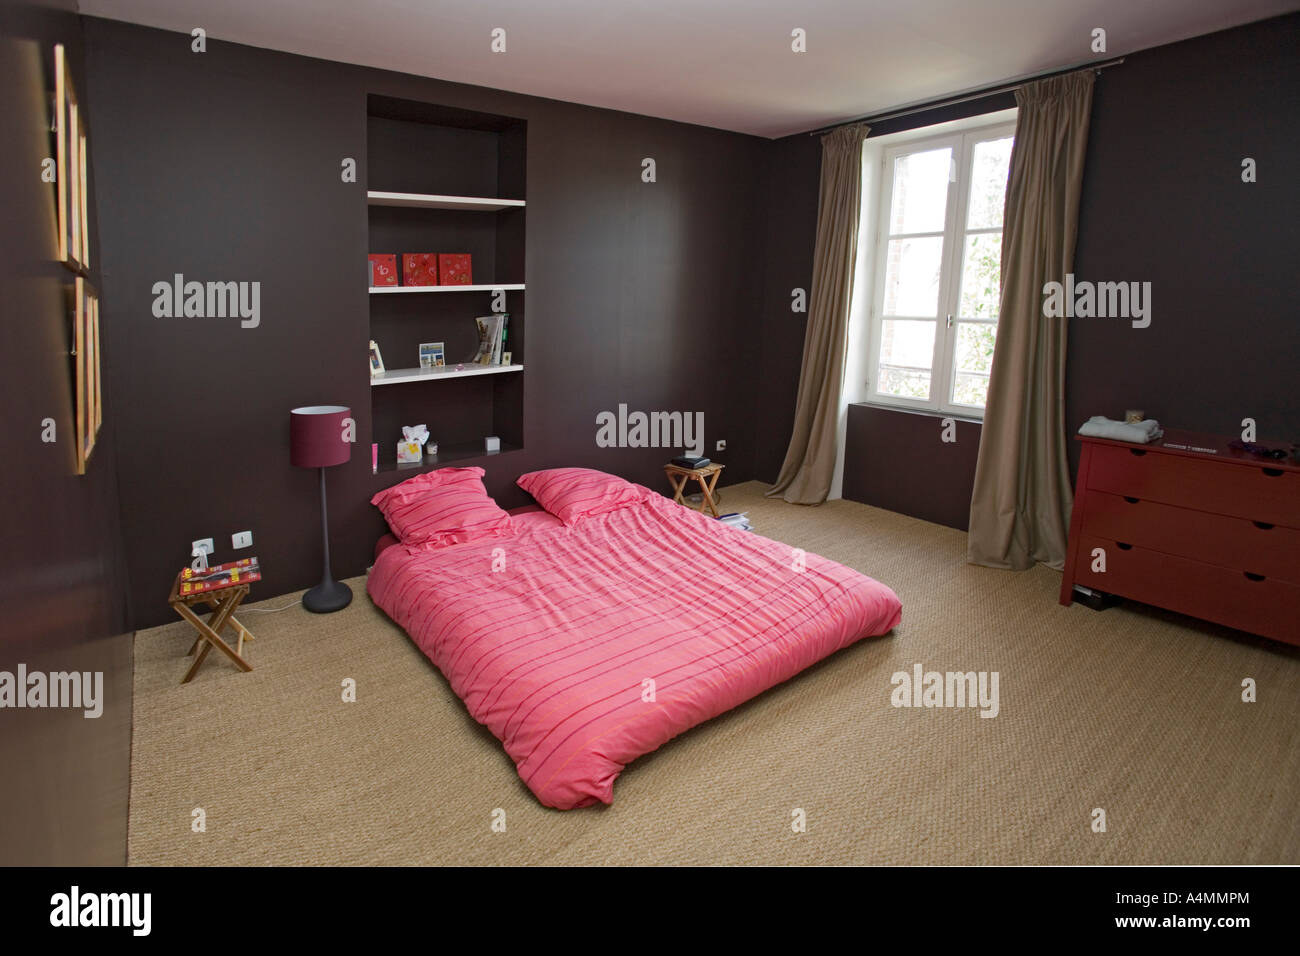 A Contemporary Bedroom With Minimalist Decoration France